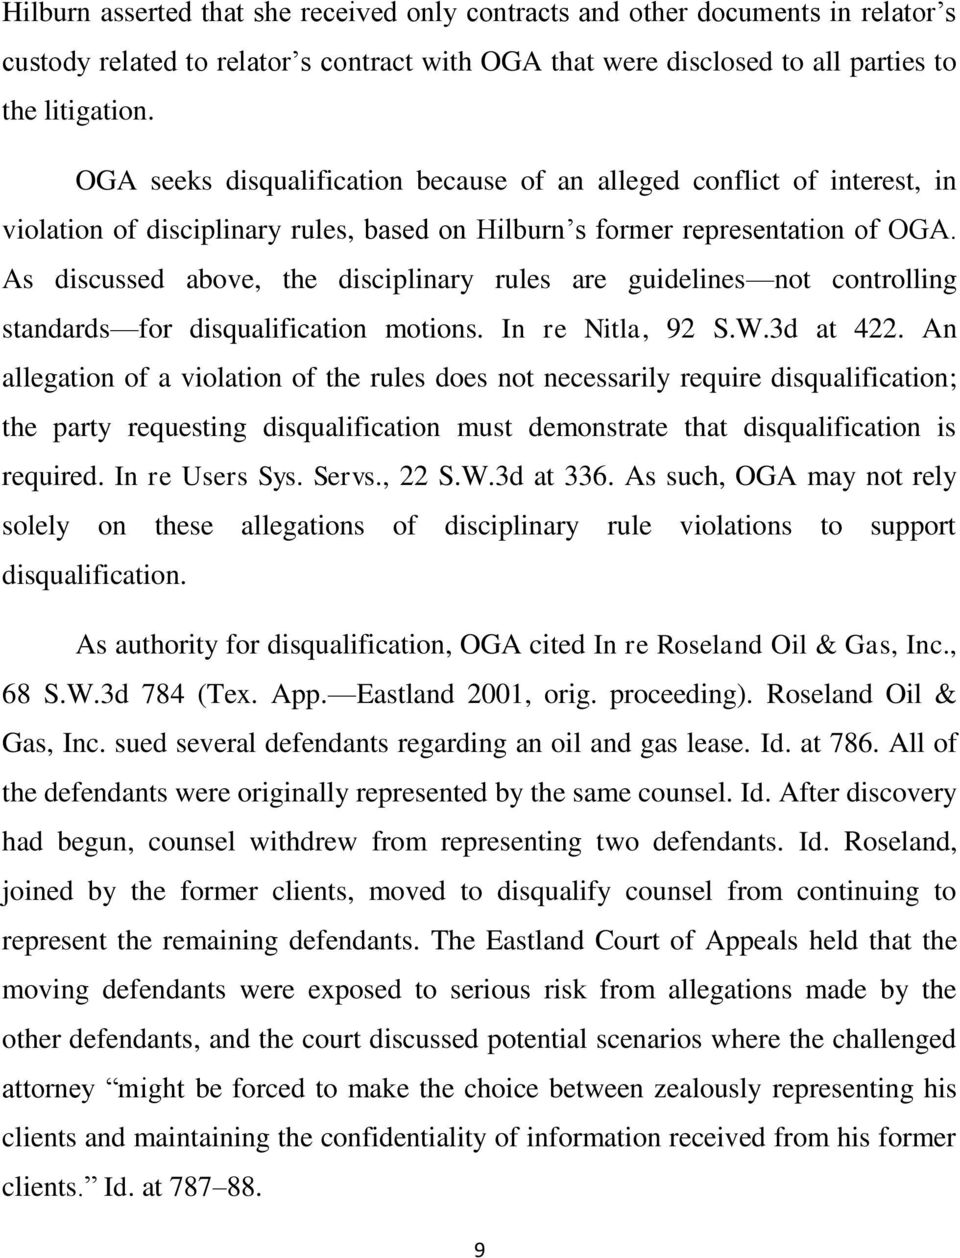 As discussed above, the disciplinary rules are guidelines not controlling standards for disqualification motions. In re Nitla, 92 S.W.3d at 422.